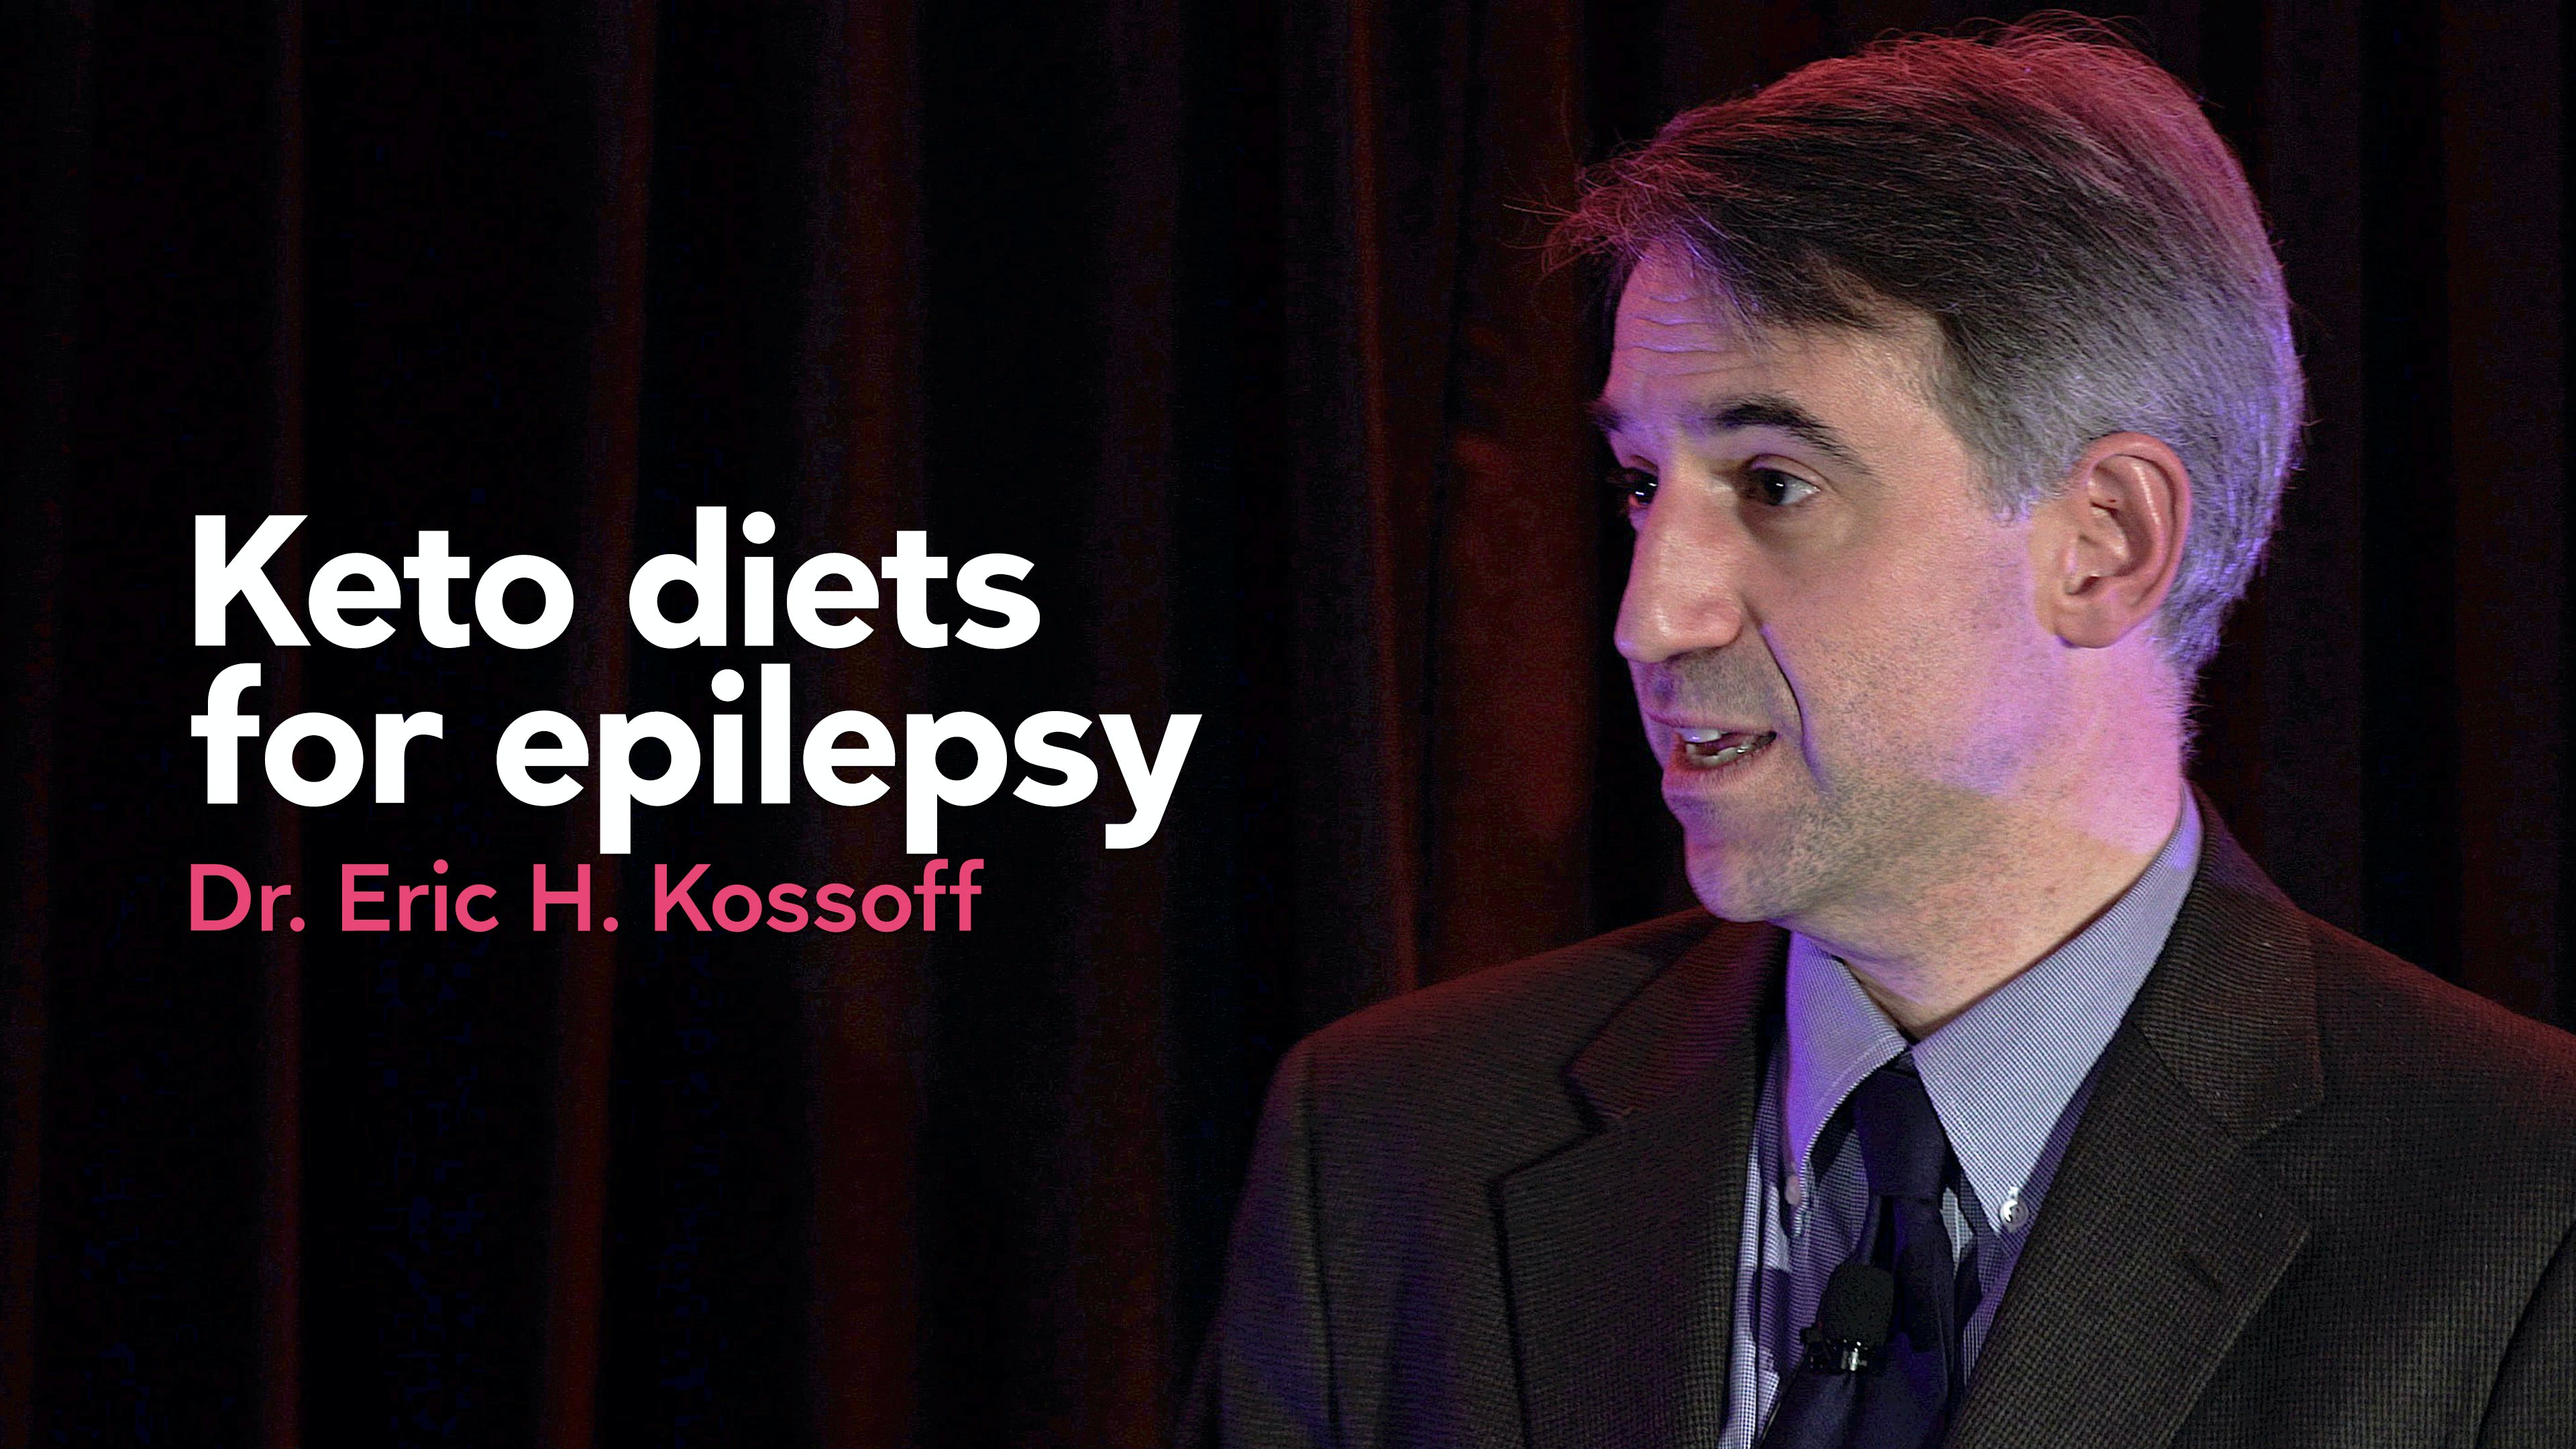 Keto diets for epilepsy